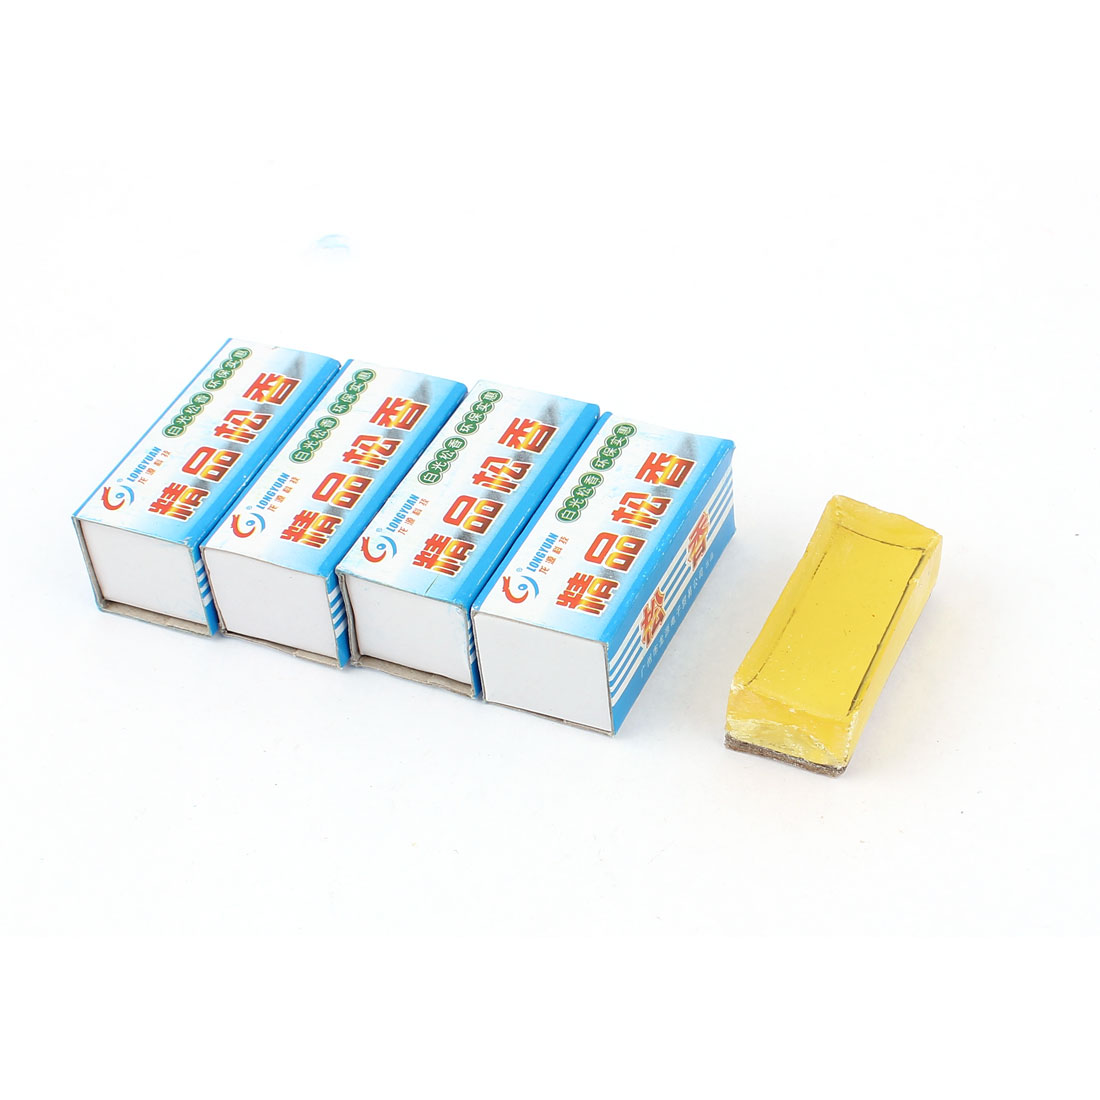 5 Pcs Soldering Tin Paste Solder Rosin Flux 50mm x 20mm x 20mm